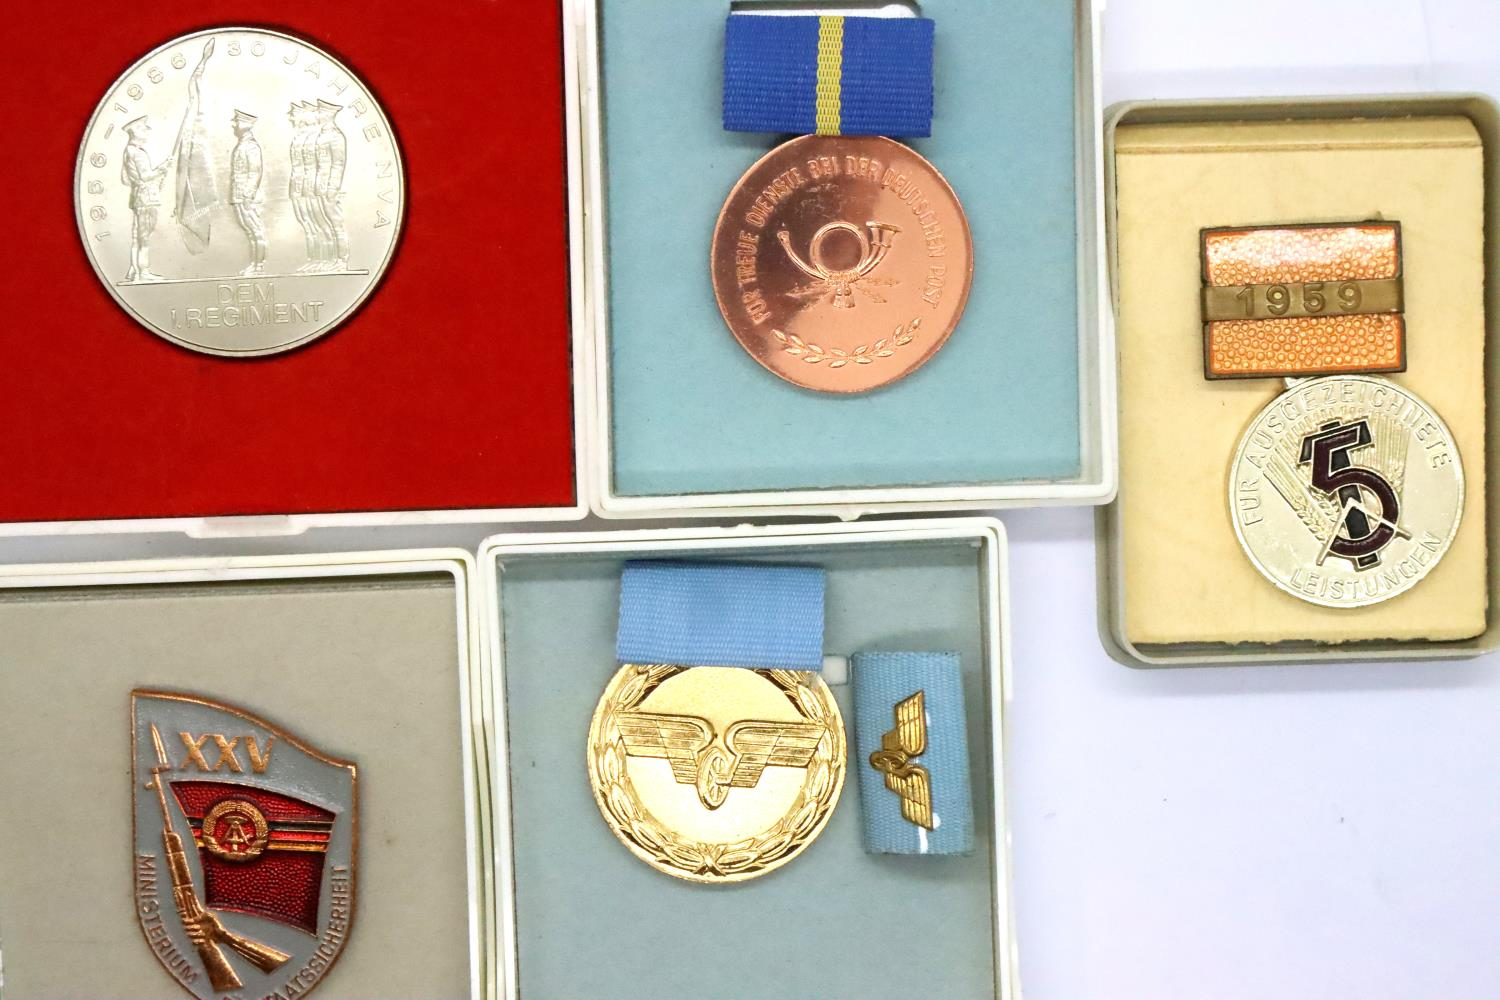 Five East German medals, boxed. P&P Group 1 (£14+VAT for the first lot and £1+VAT for subsequent